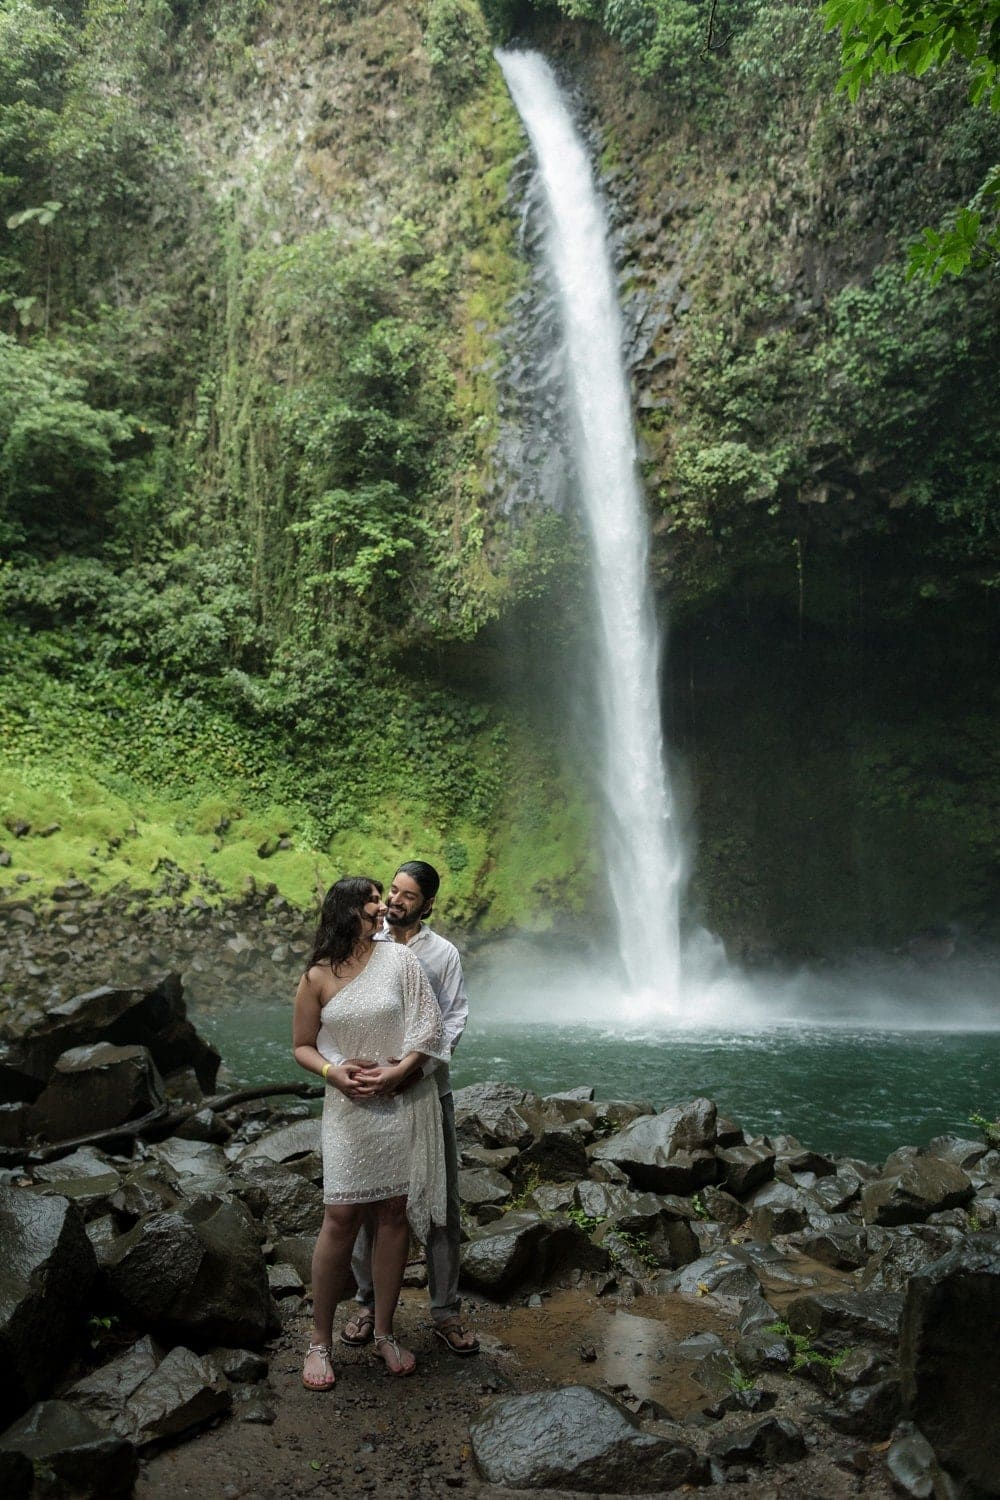 Amberene-Farhan-Engagement-Photos-La-Fortuna-Waterfall-10.jpg